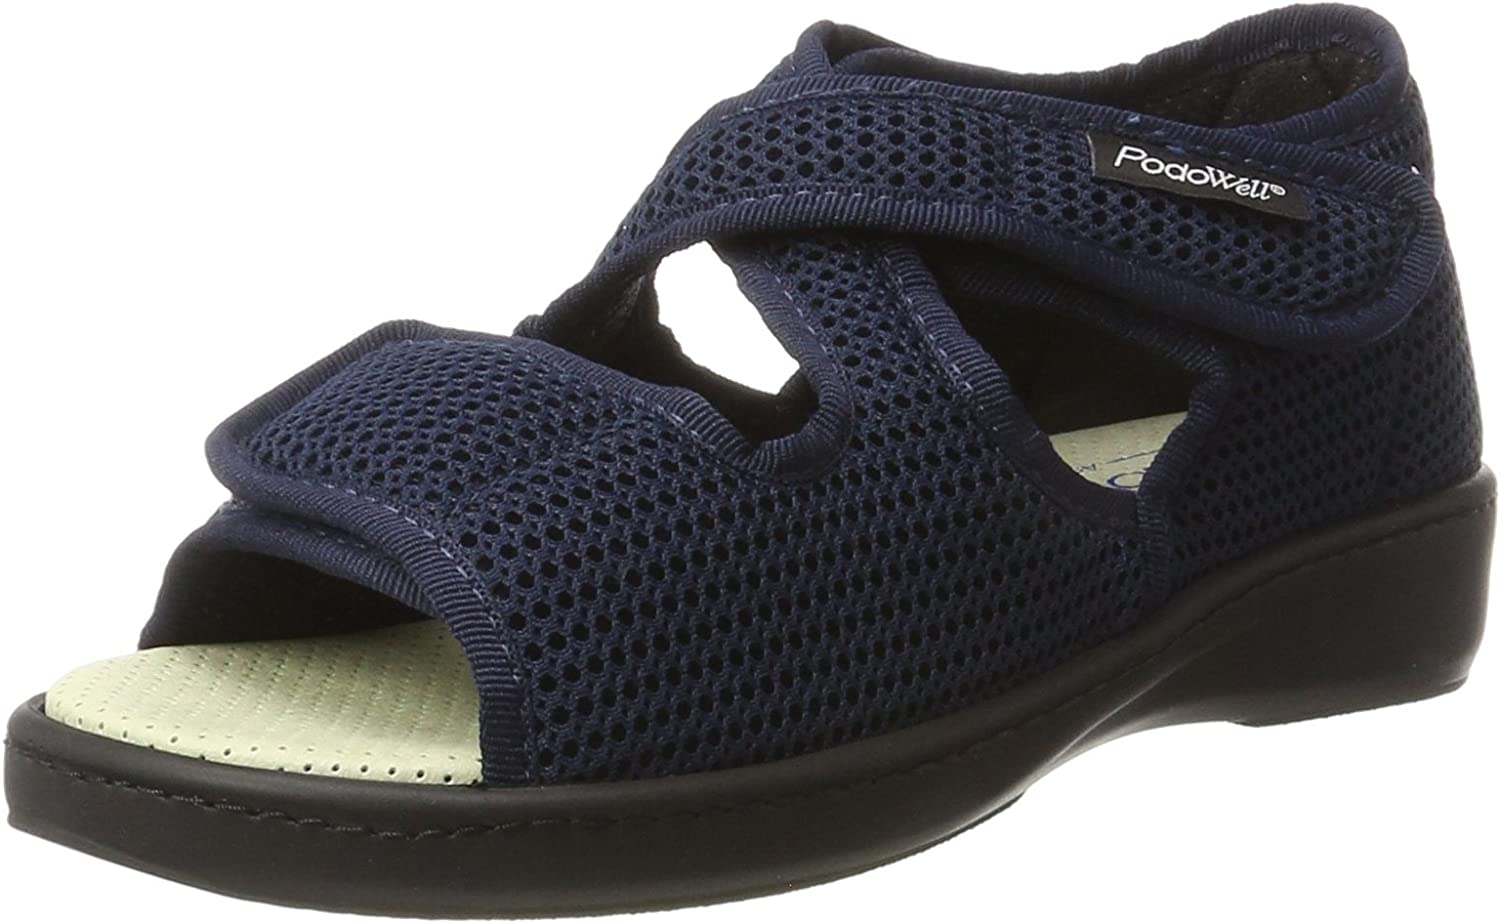 PodoWell Unisex Adults Andalou Hi-Top Slippers